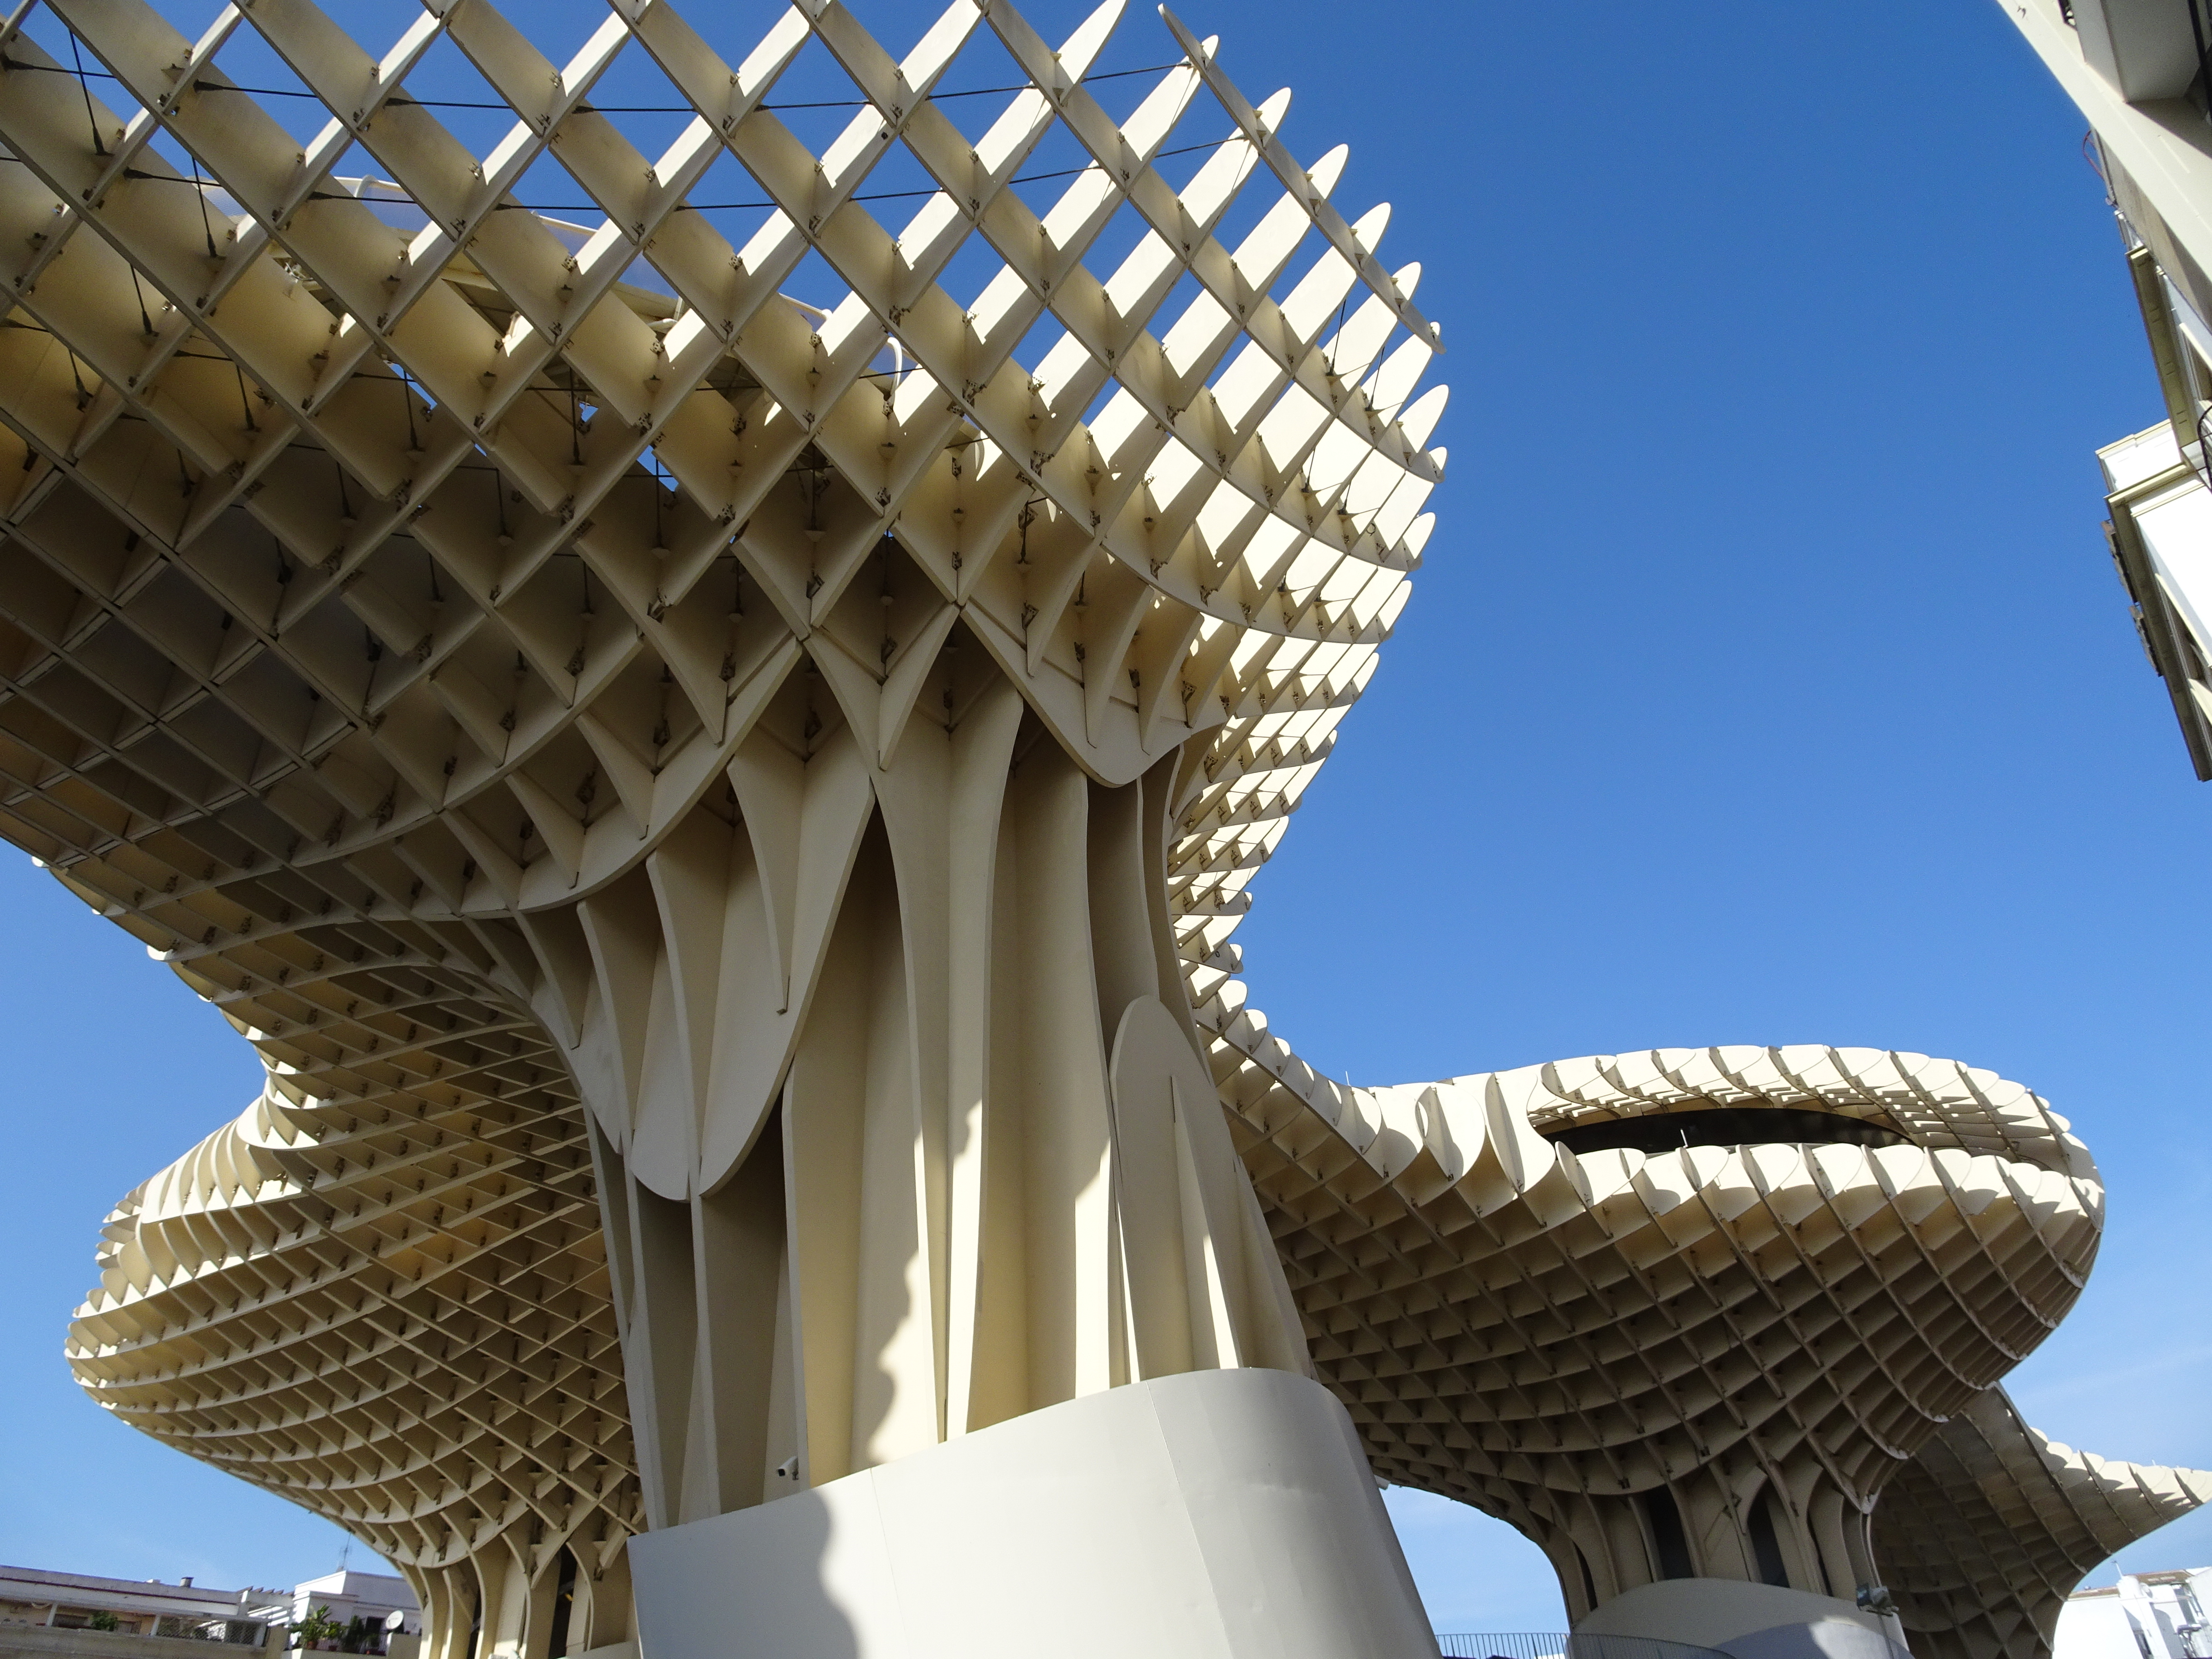 See the Metropol Parasol in Seville